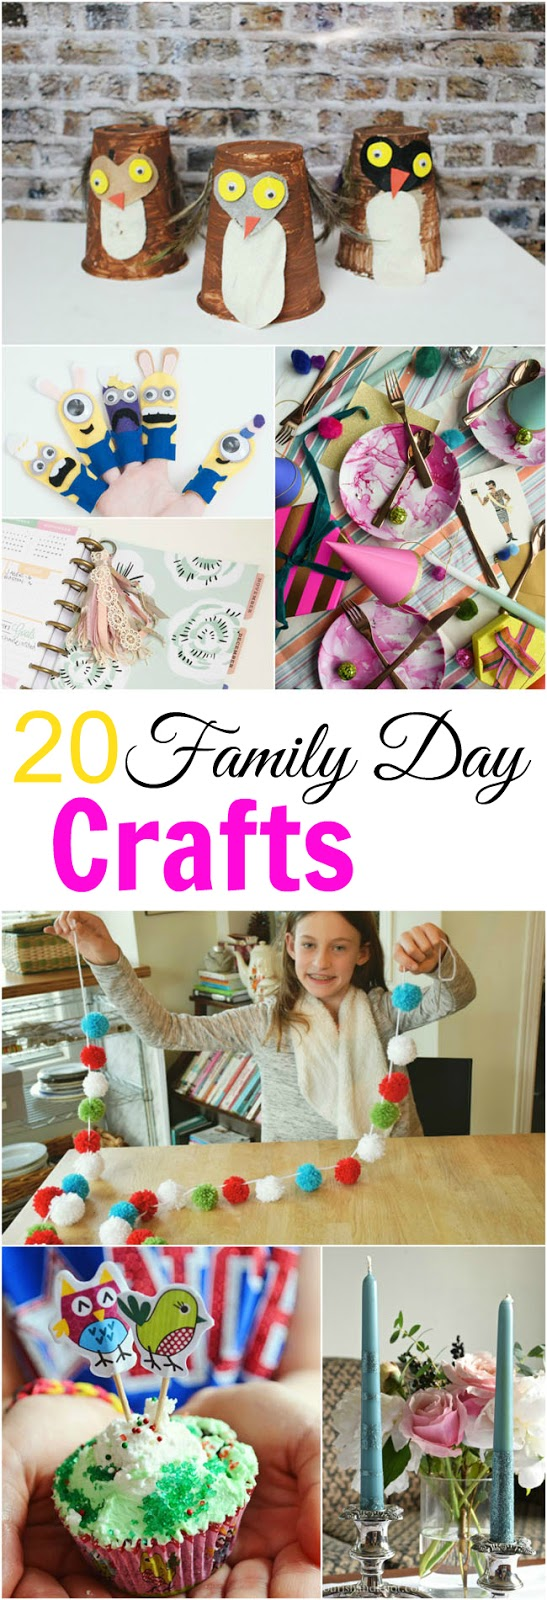 Here are 20 ideas for crafts and activities to do with your kids on Family Day or any day you want to spend time bonding together indoors.